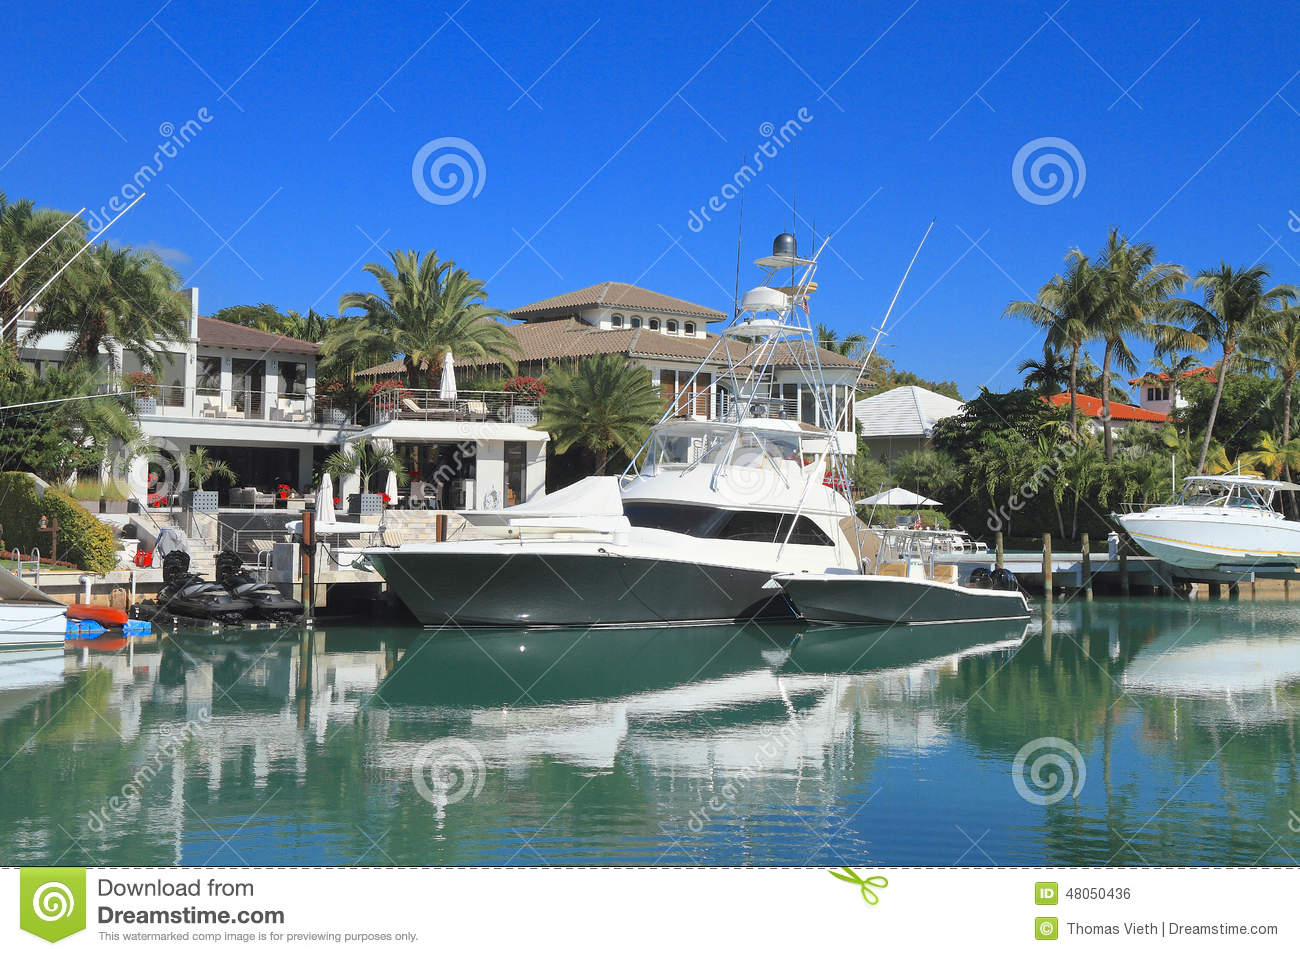 map of dade county florida with Stock Photo Florida Miami Waterfront Homes Boats Key Biscayne Luxury Canal Village Island Dade County United Image48050436 on Marlins Park moreover Press Kit also Coral Castle Homestead FL in addition 90340 further I95managedlanes.